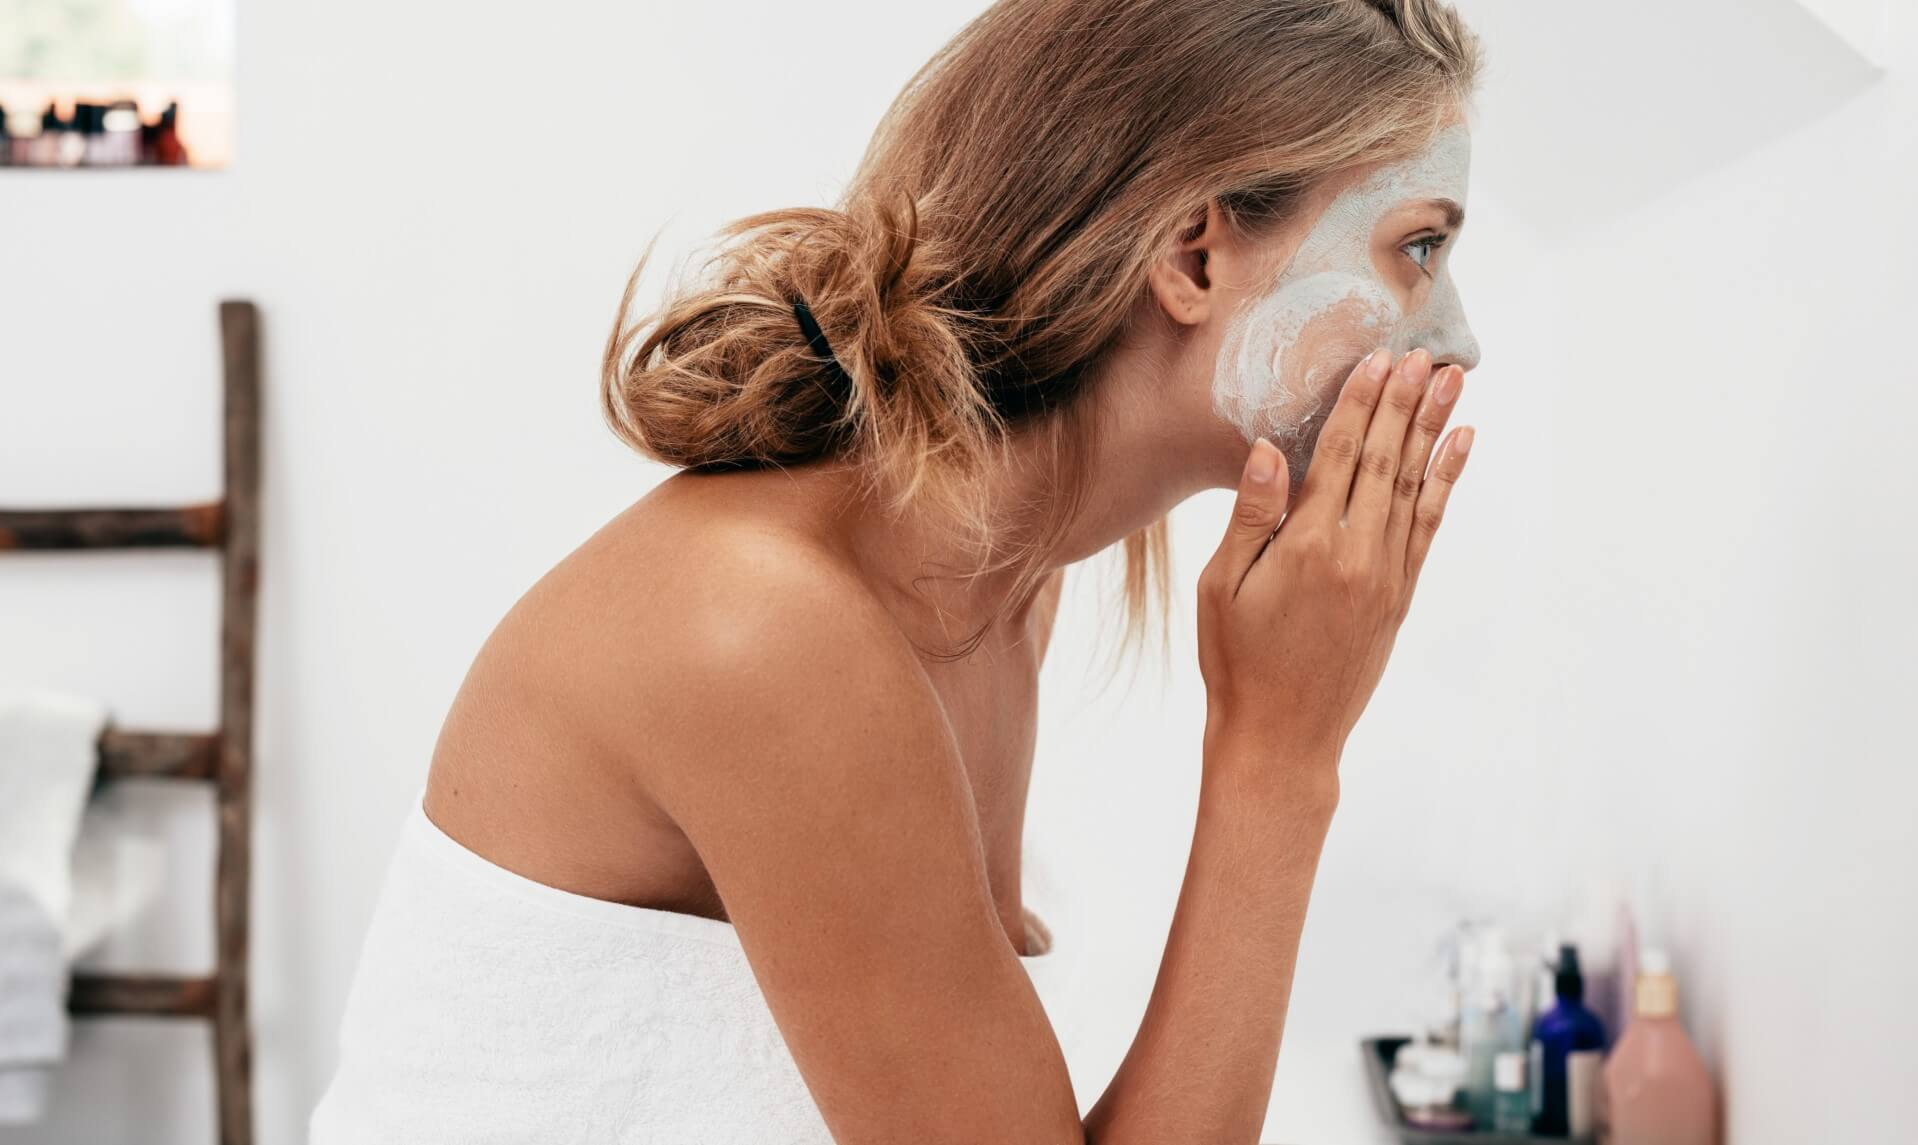 How to Keep Blackheads at Bay. Fed up of battling blackheads? Here's more about what they are, why you get them, and most importantly, how to treat them.